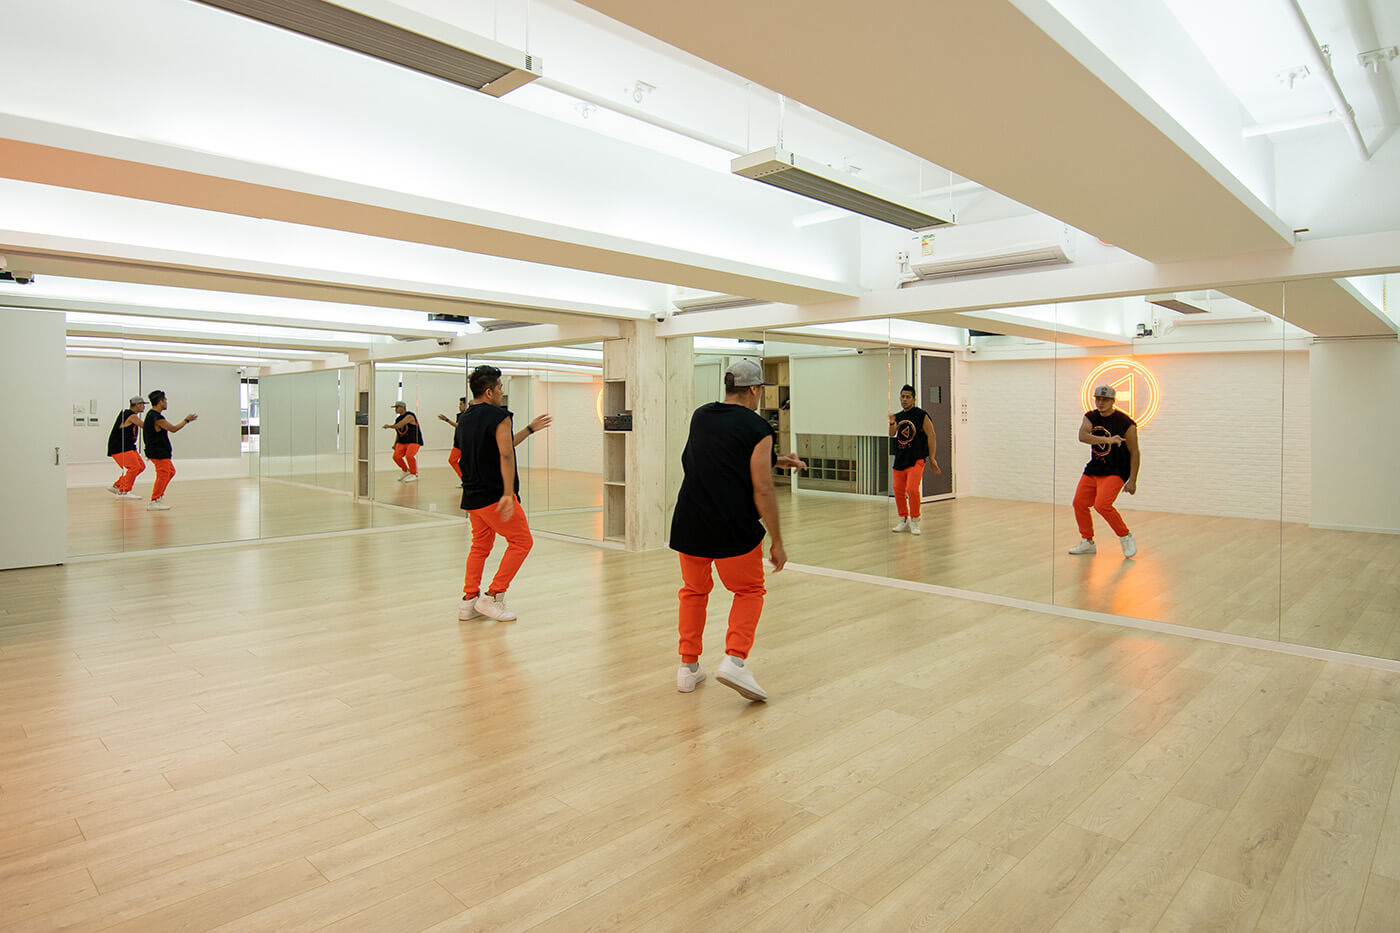 Two bfit dance teachers are practicing at a big dance room with mirrors on two sides.